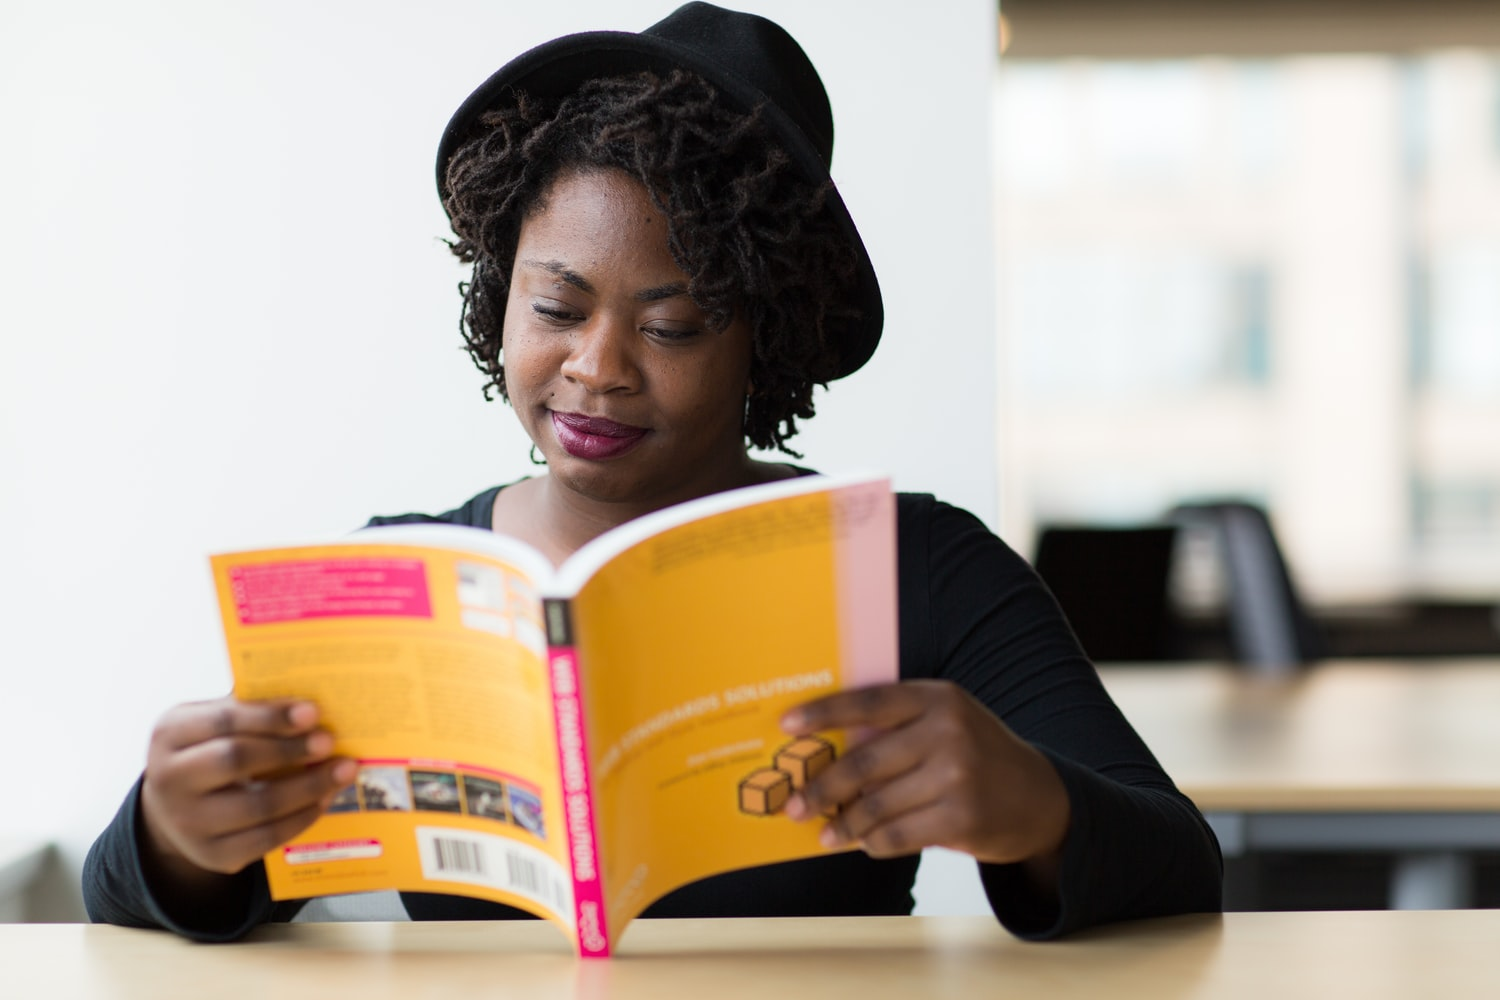 How to write a book title: a Black woman reads a book.